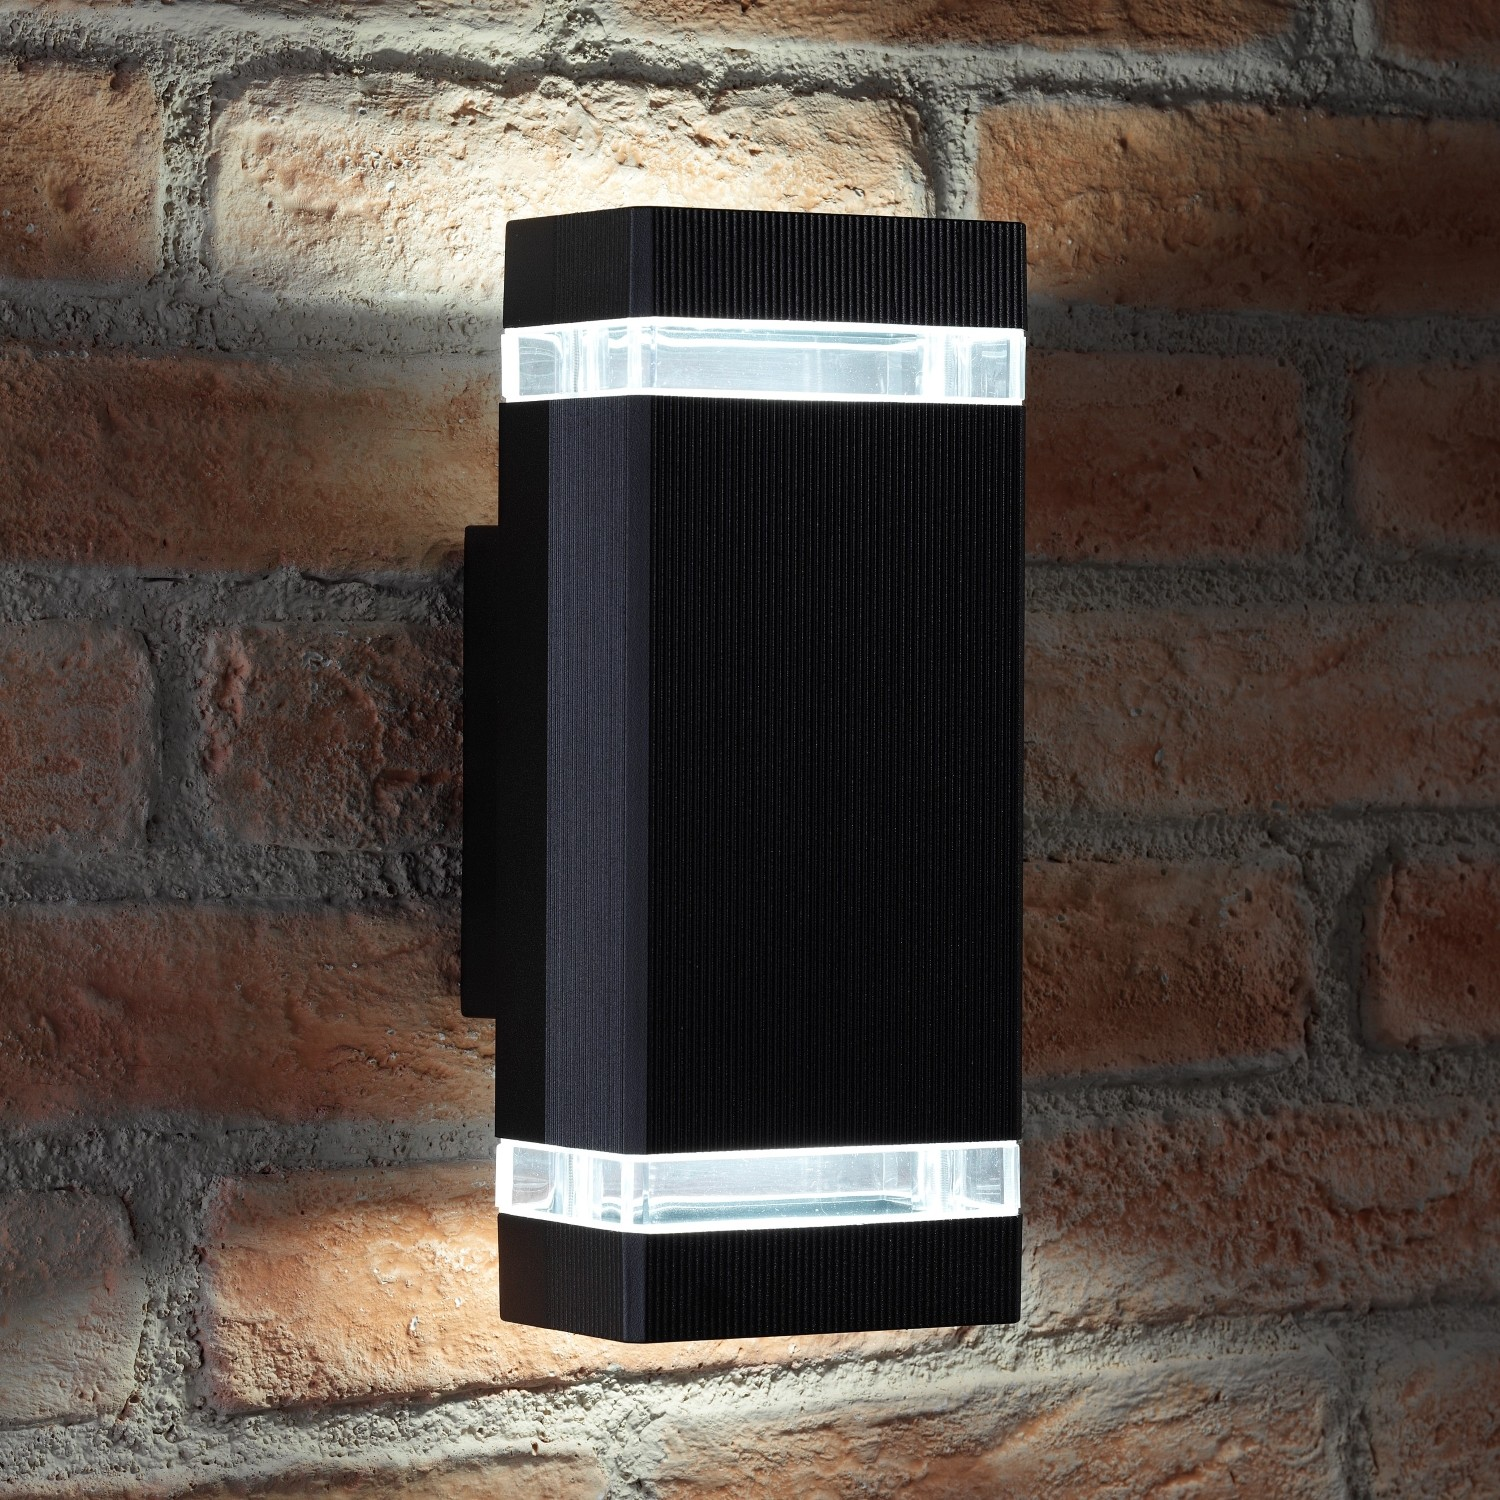 auraglow large outdoor double up down wall light chilton black auraglow auraglow led. Black Bedroom Furniture Sets. Home Design Ideas